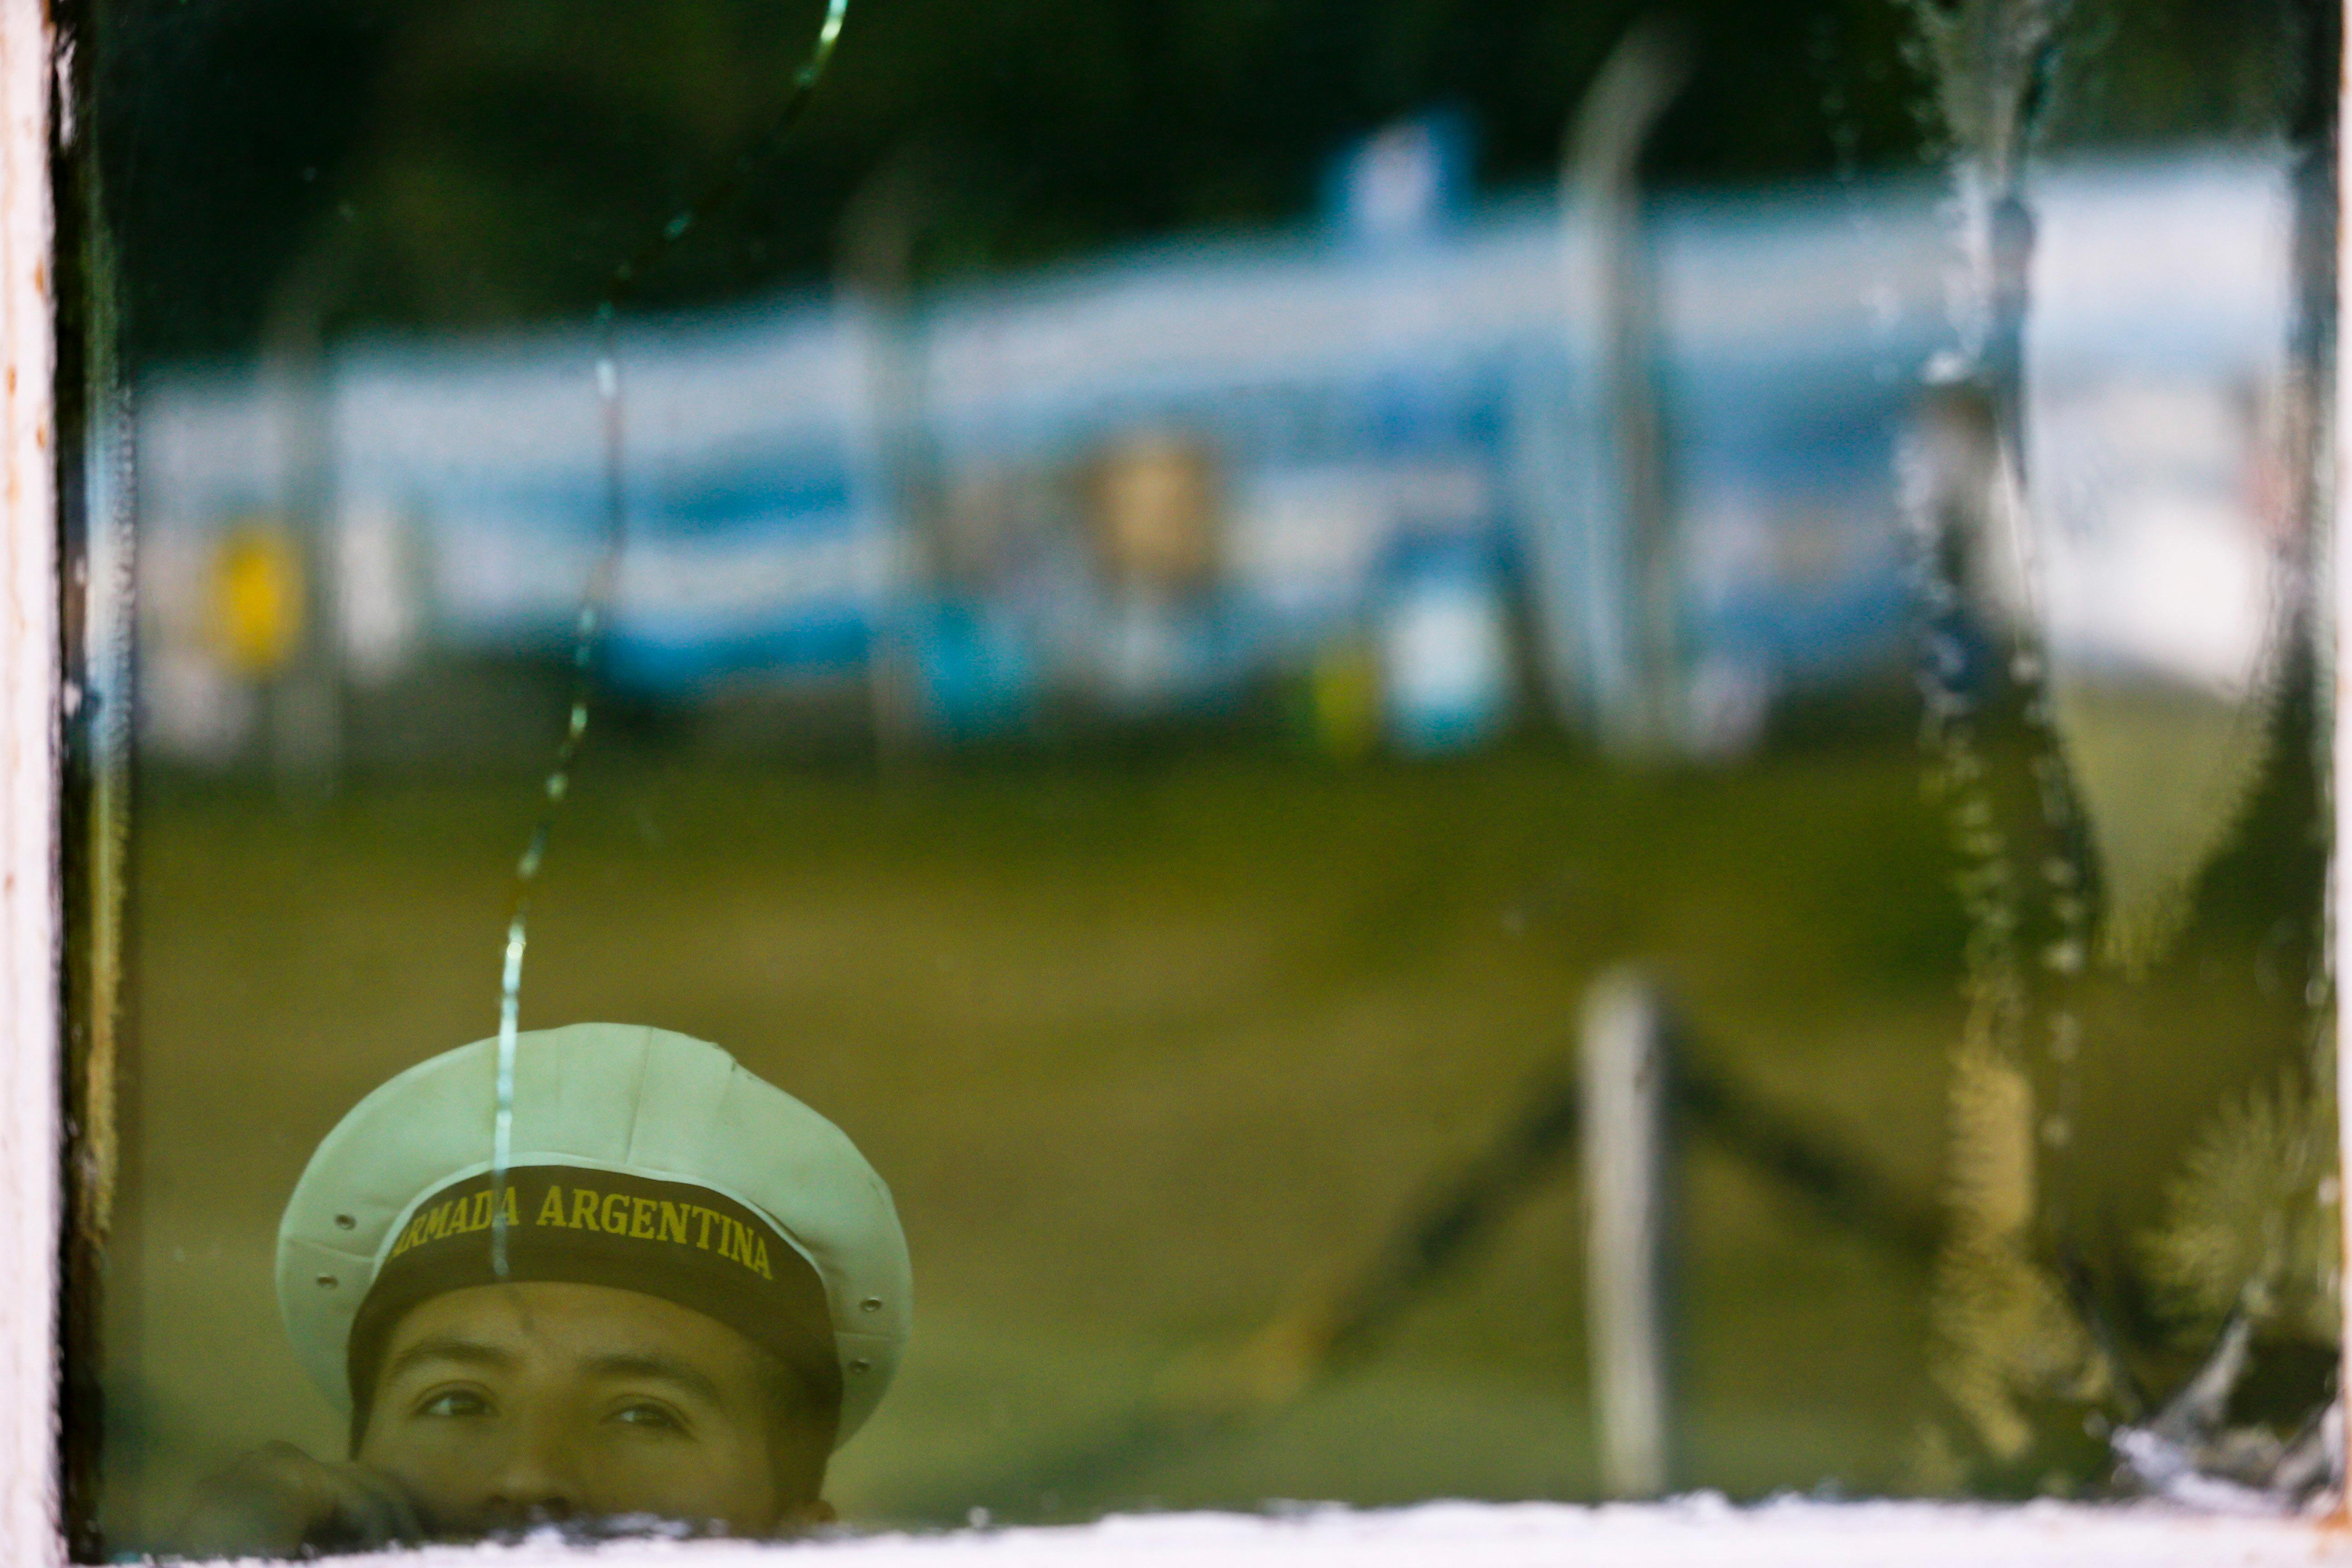 A seaman looks out from a checkpoint window that shows the reflection of a fence blanketed with national flags and homemade signs in support of submarine crew members of the missing  ARA San Juan, at the naval base in Mar de Plata, Argentina, Thursday, Nov. 23, 2017. More help was arriving in a multinational search Thursday for the Argentine submarine with 44 crew members as concern grew that the vessel's oxygen supply could soon start to run out. (AP Photo/Esteban Felix)